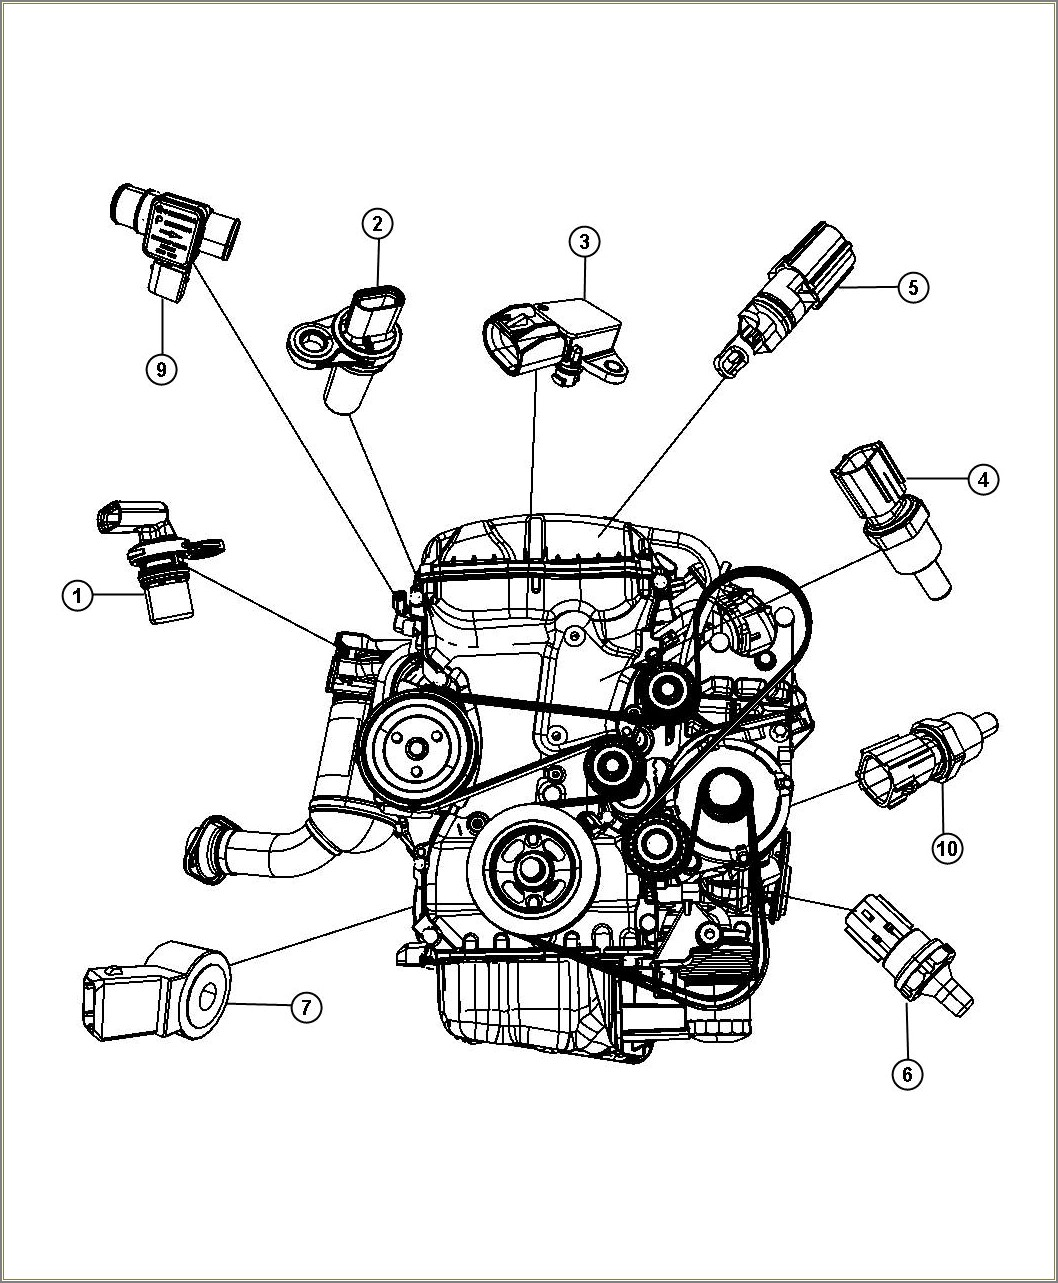 Serpentine Belt Diagram 2012 Chrysler 200